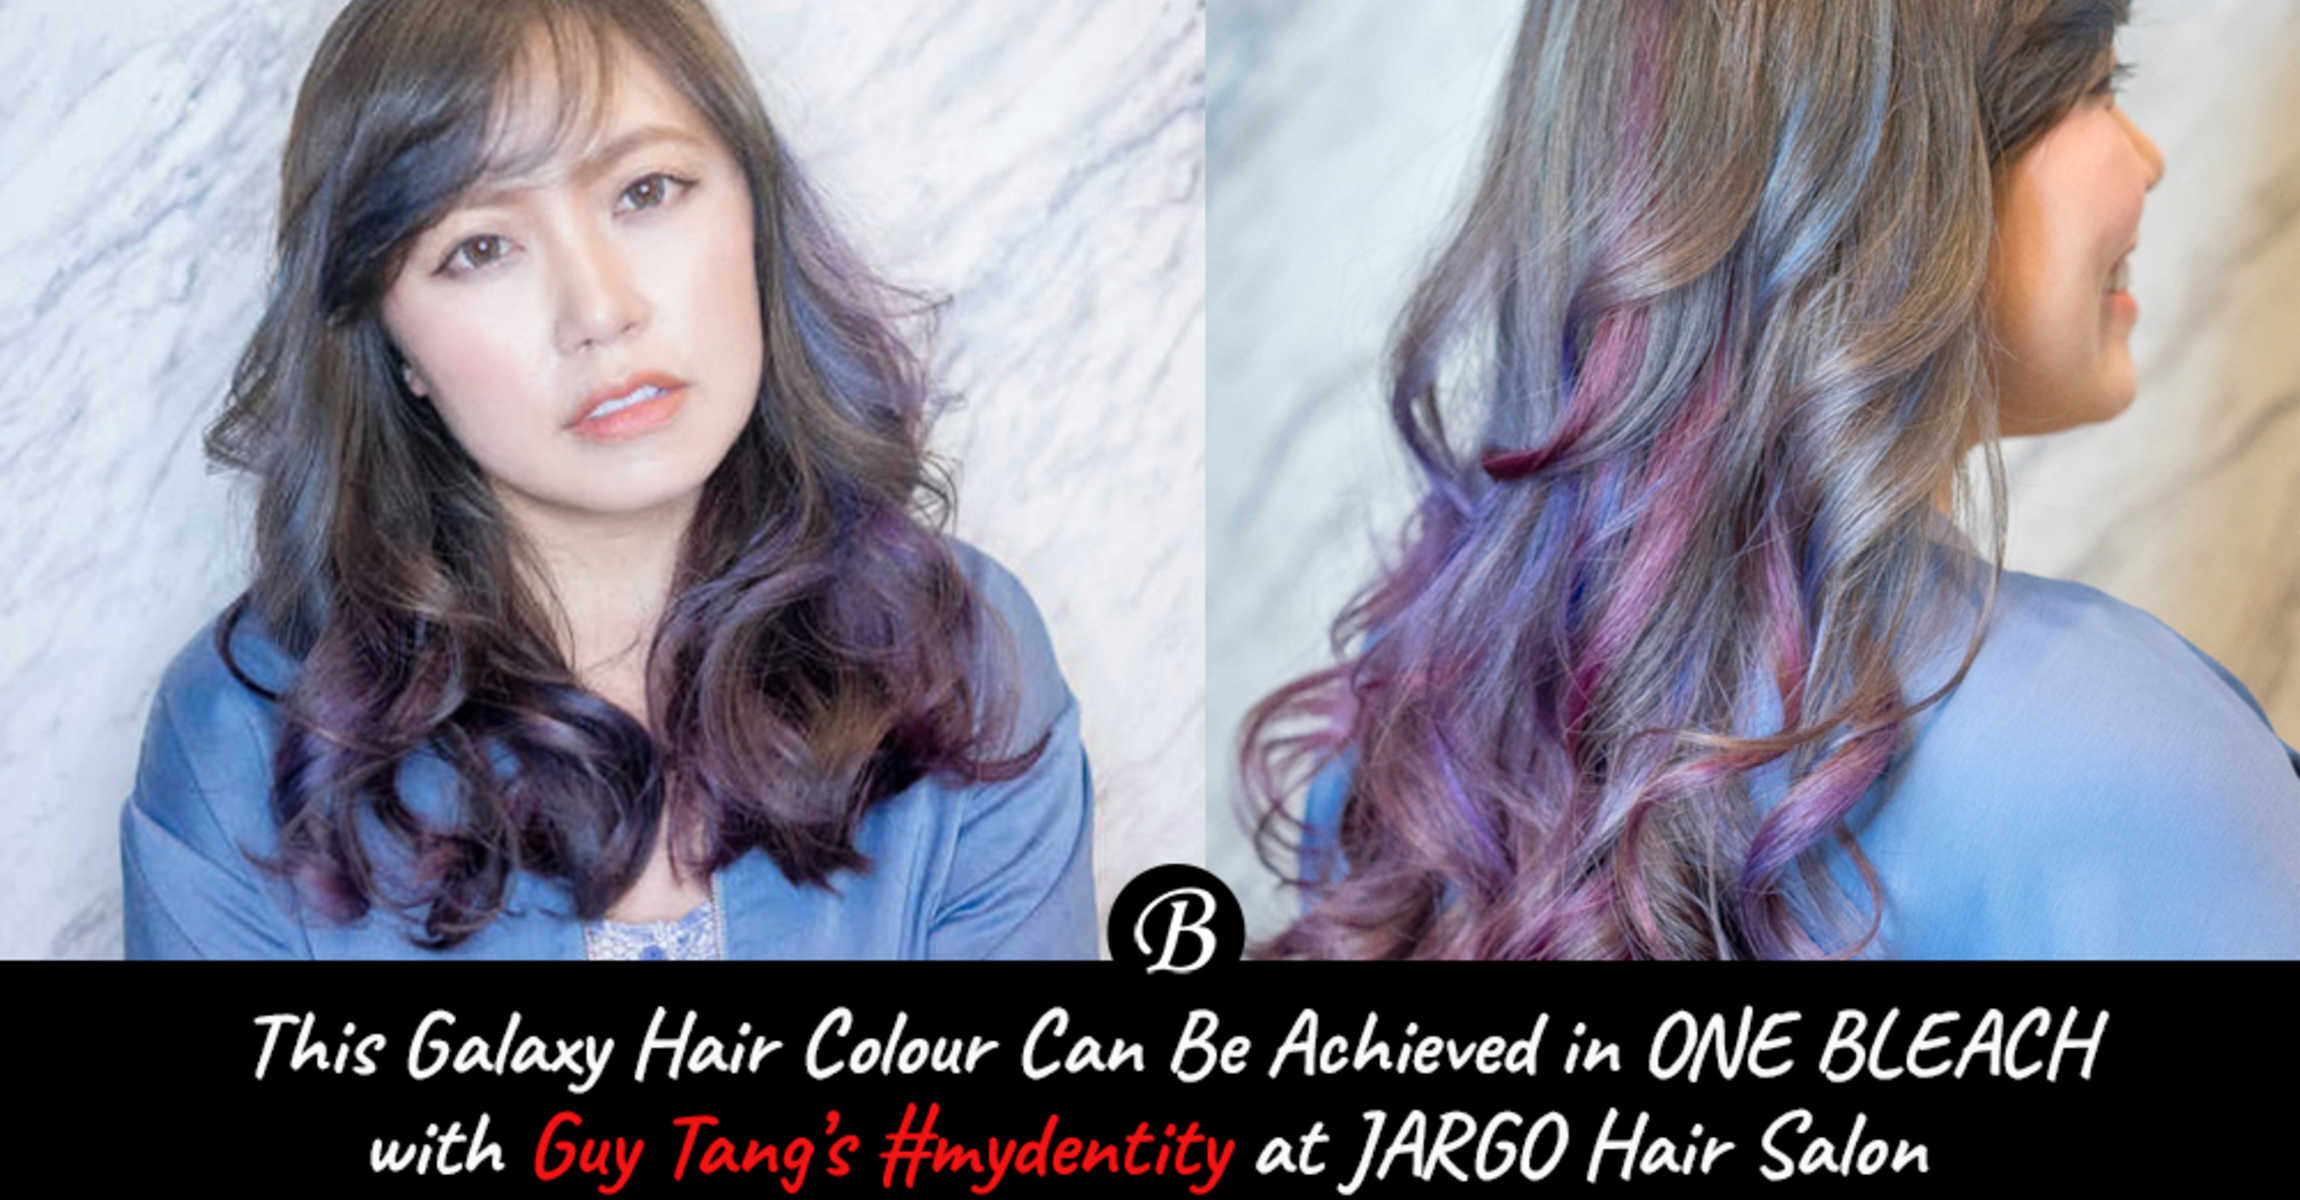 You Can Now Have Galaxy Hair in Just ONE Bleach with Guy Tang Mydentity at Hair Illustrated